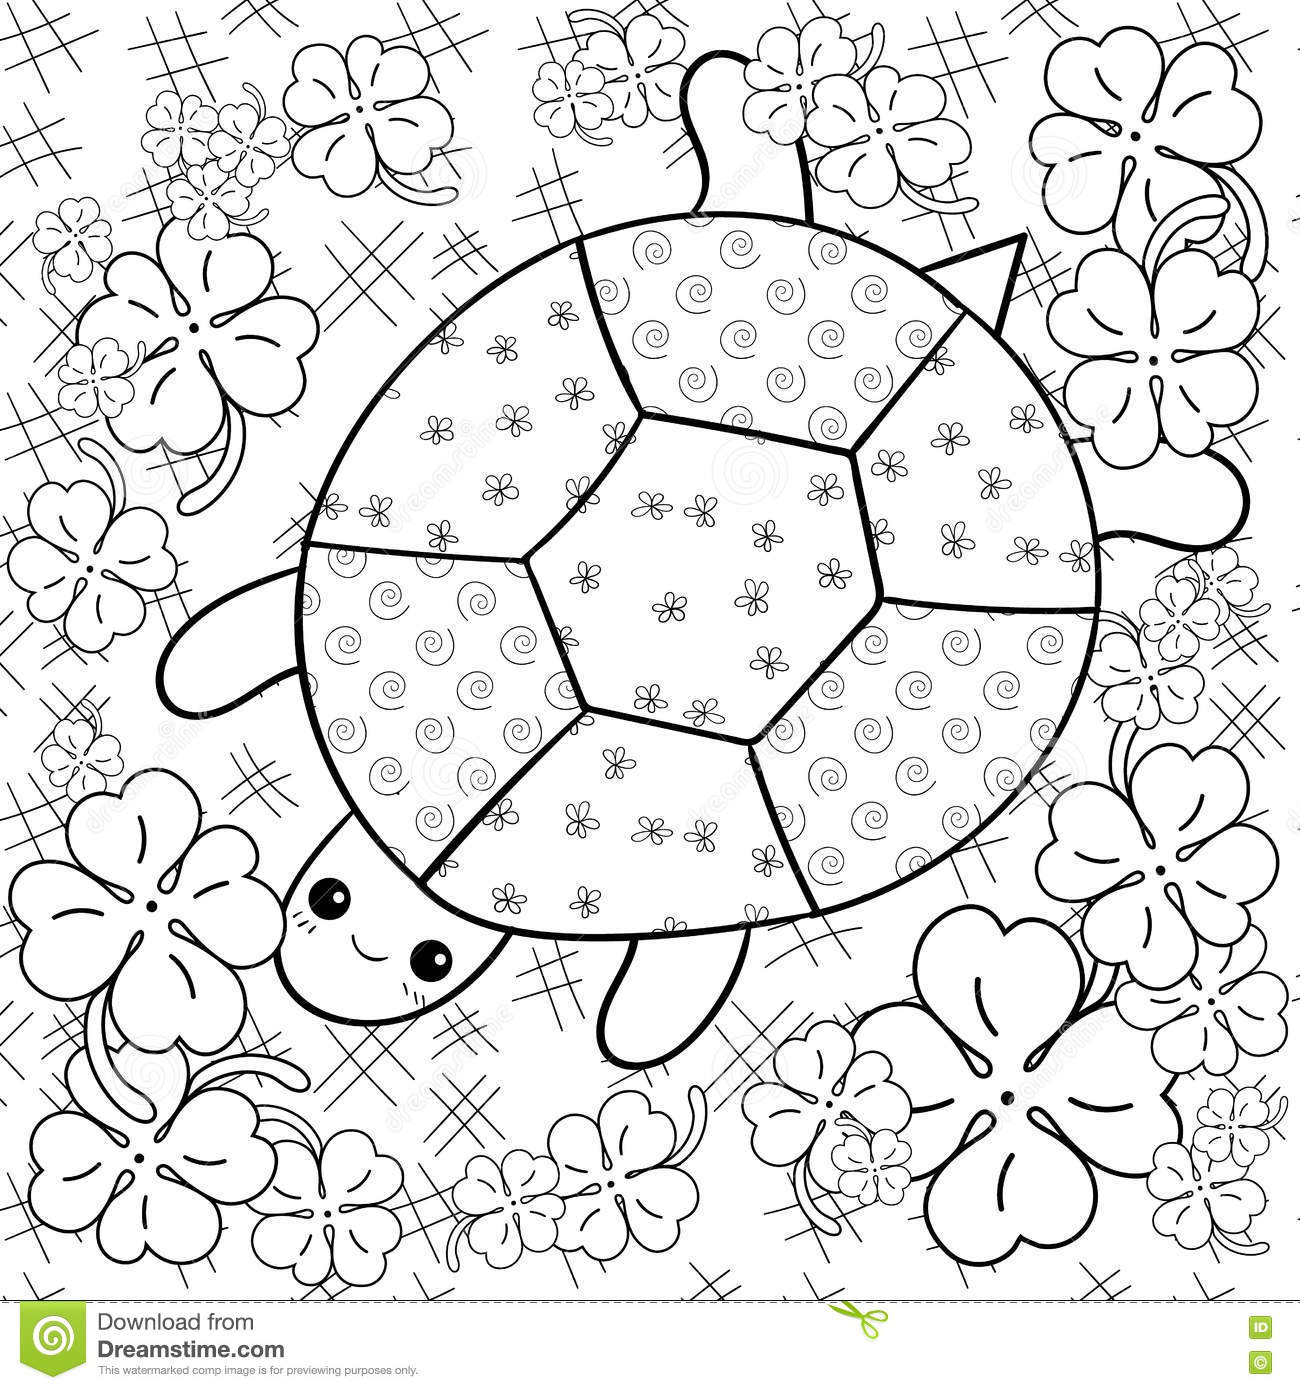 Coloring book landforms - Turtle Heaven Adult Coloring Book Page Turtle In Clover Garden Colouring Page